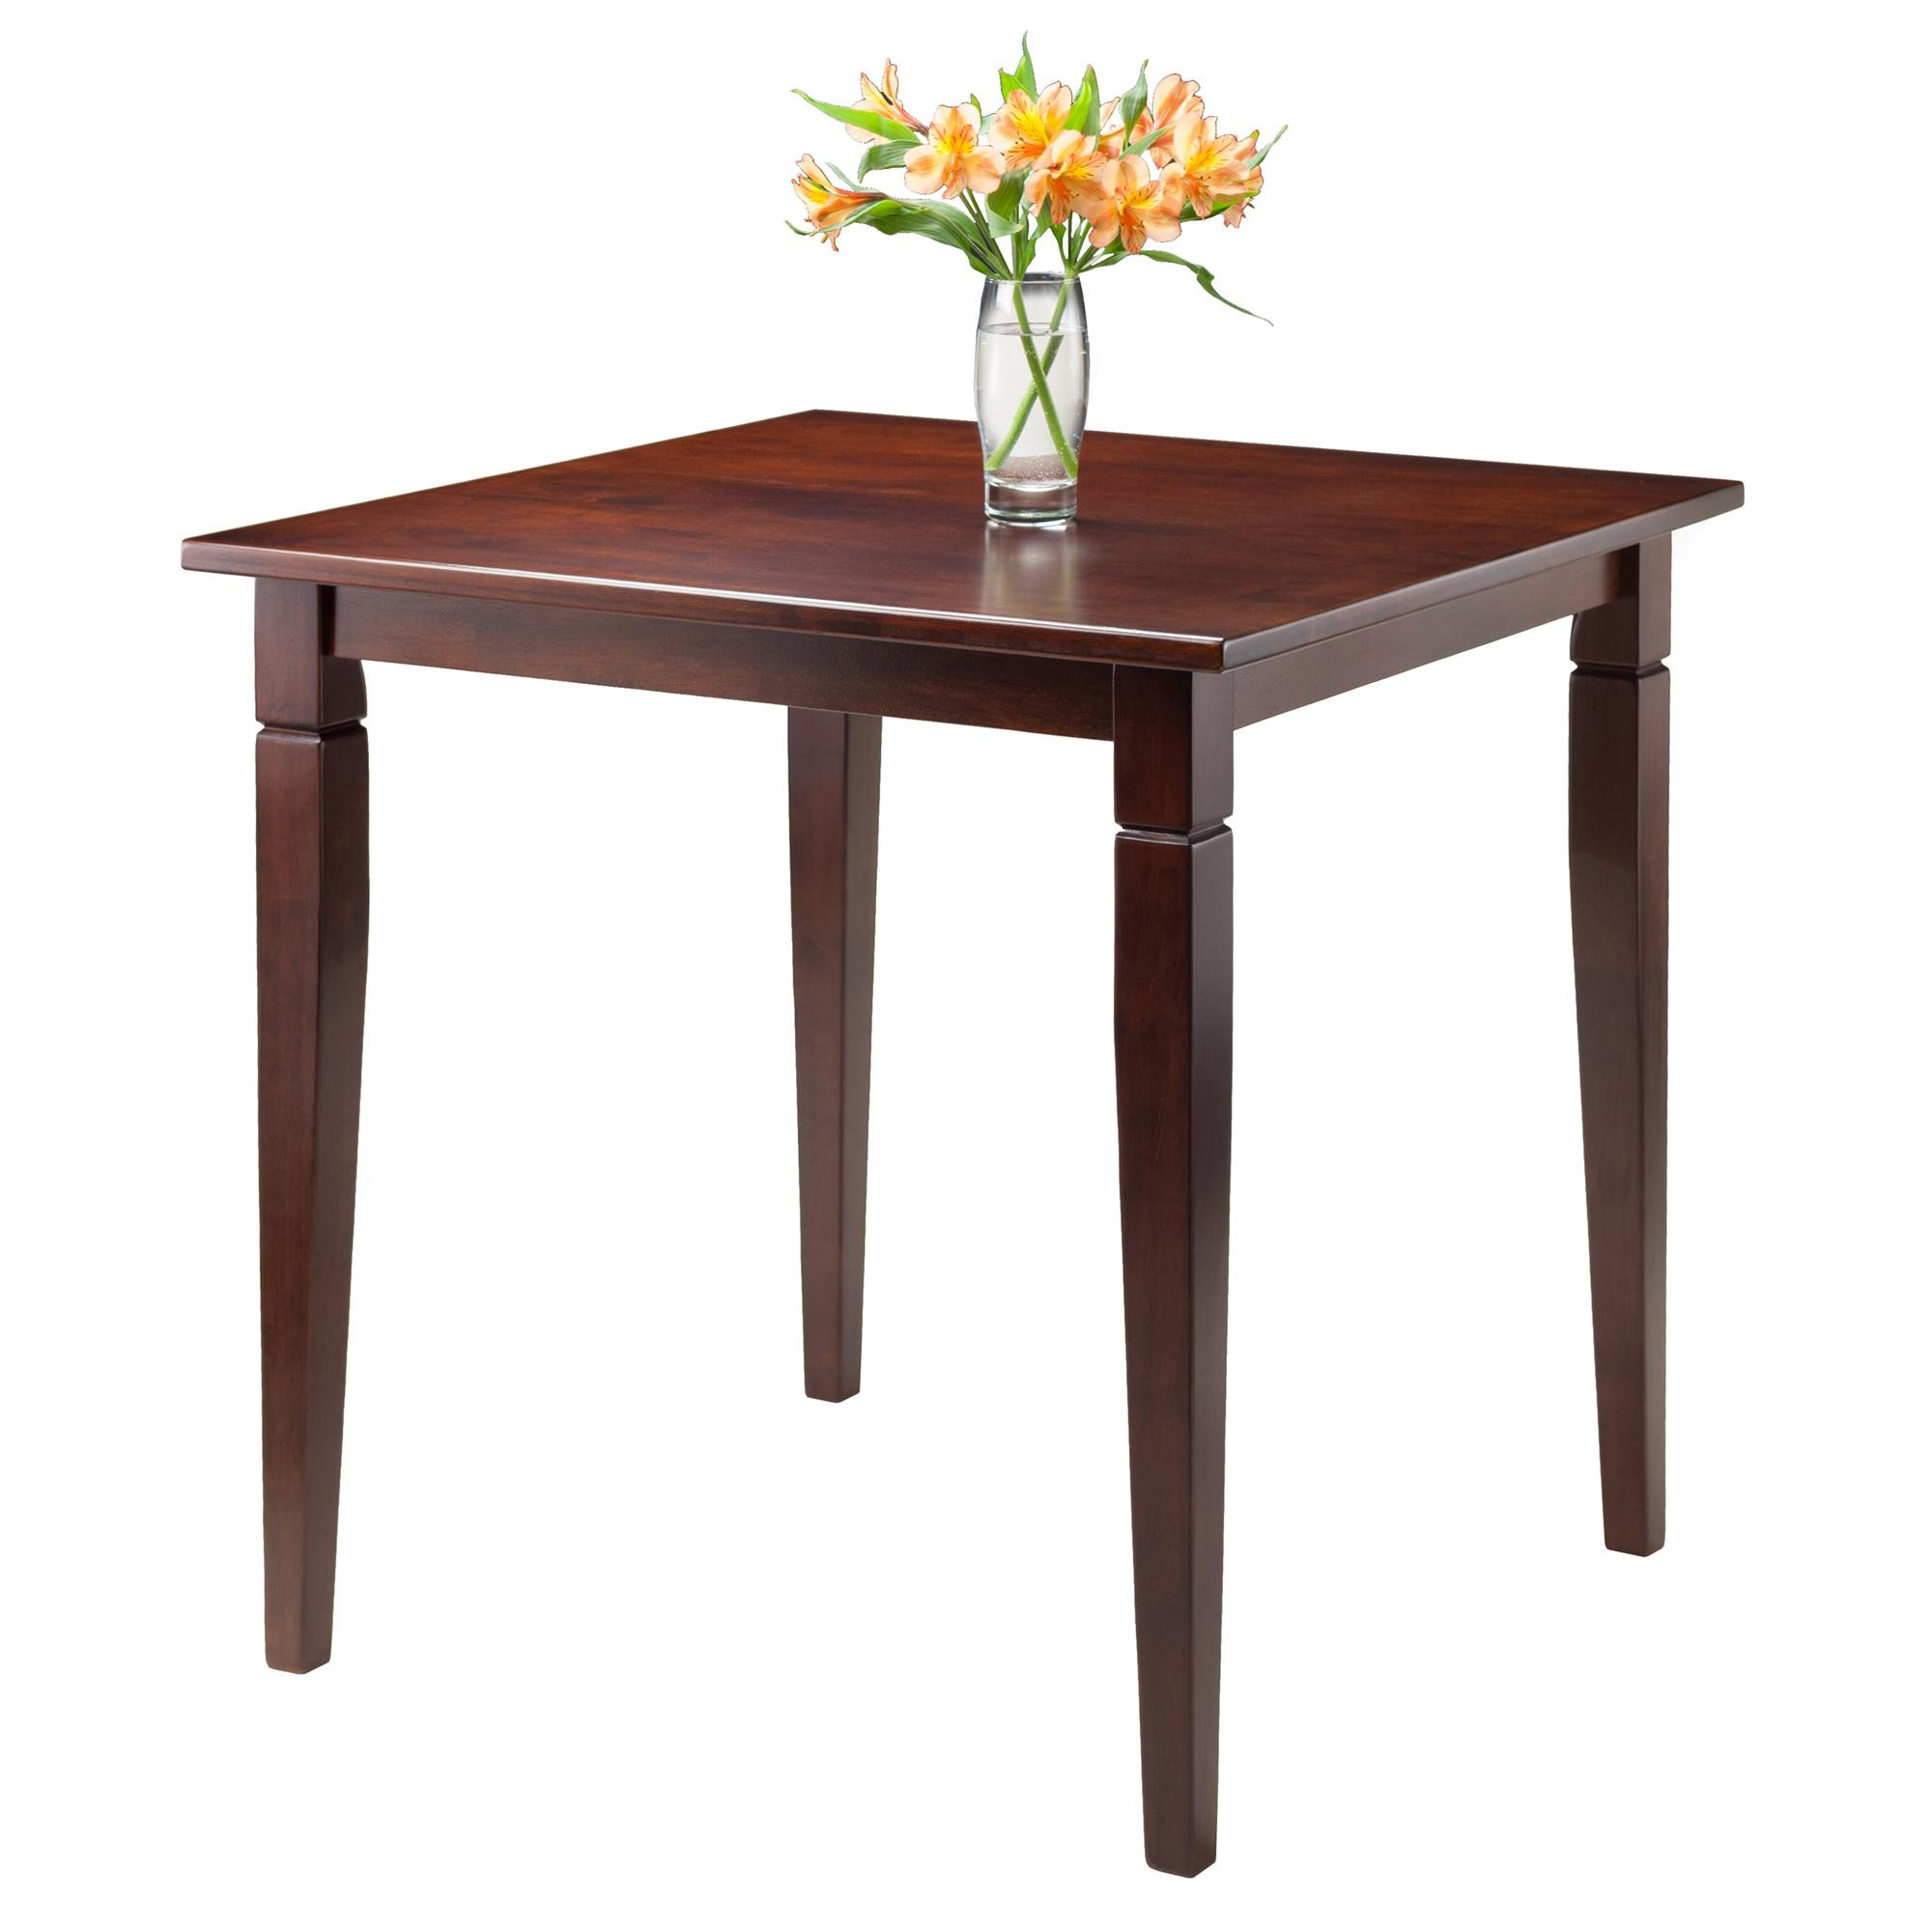 Best ideas about Amazon Dining Table . Save or Pin Amazon Winsome Kingsgate Dining Table Routed with Now.